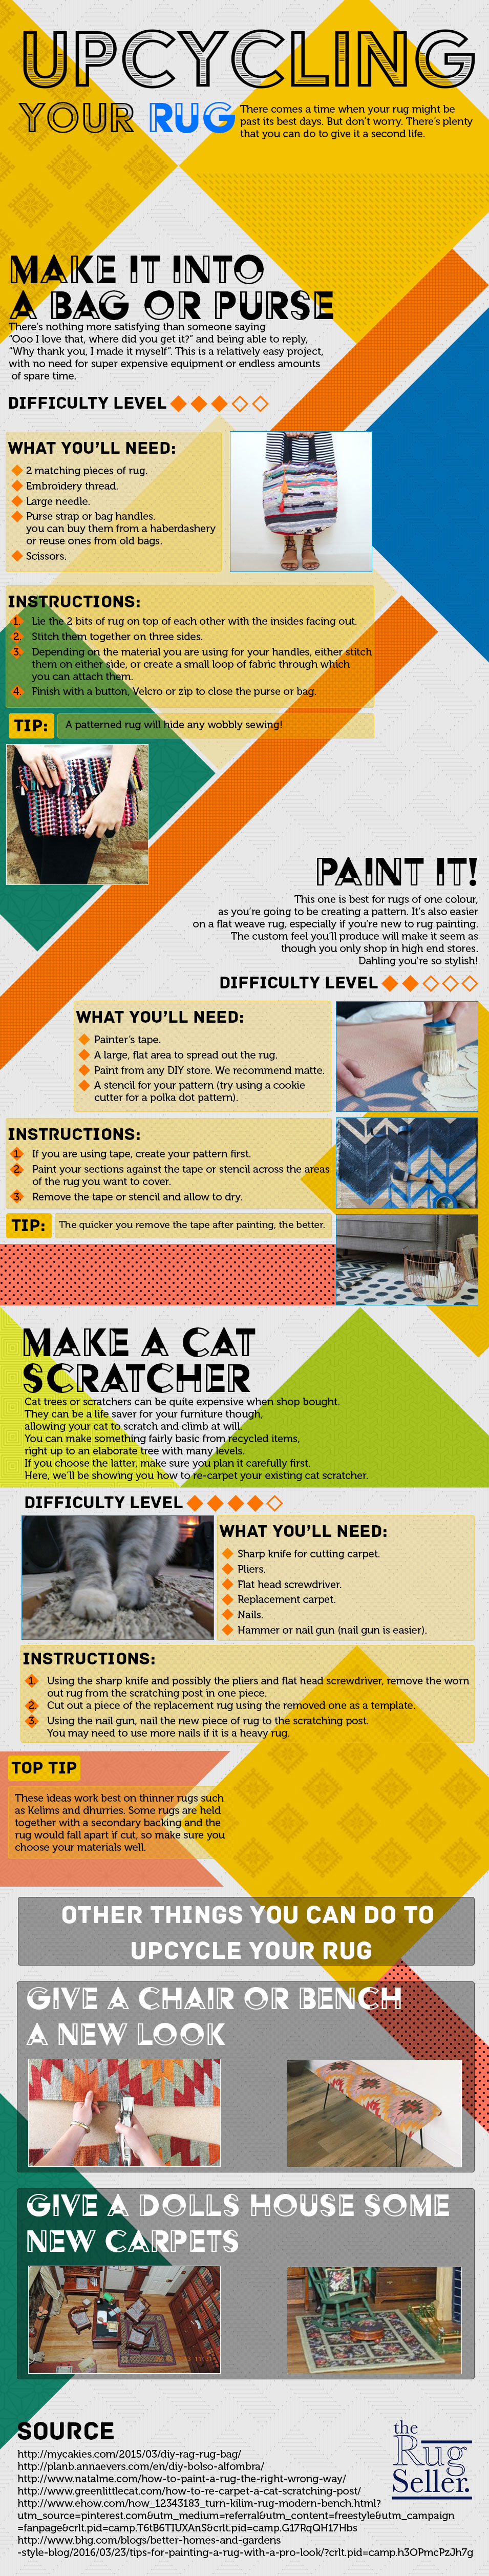 Upcycling Your Rug Infographic